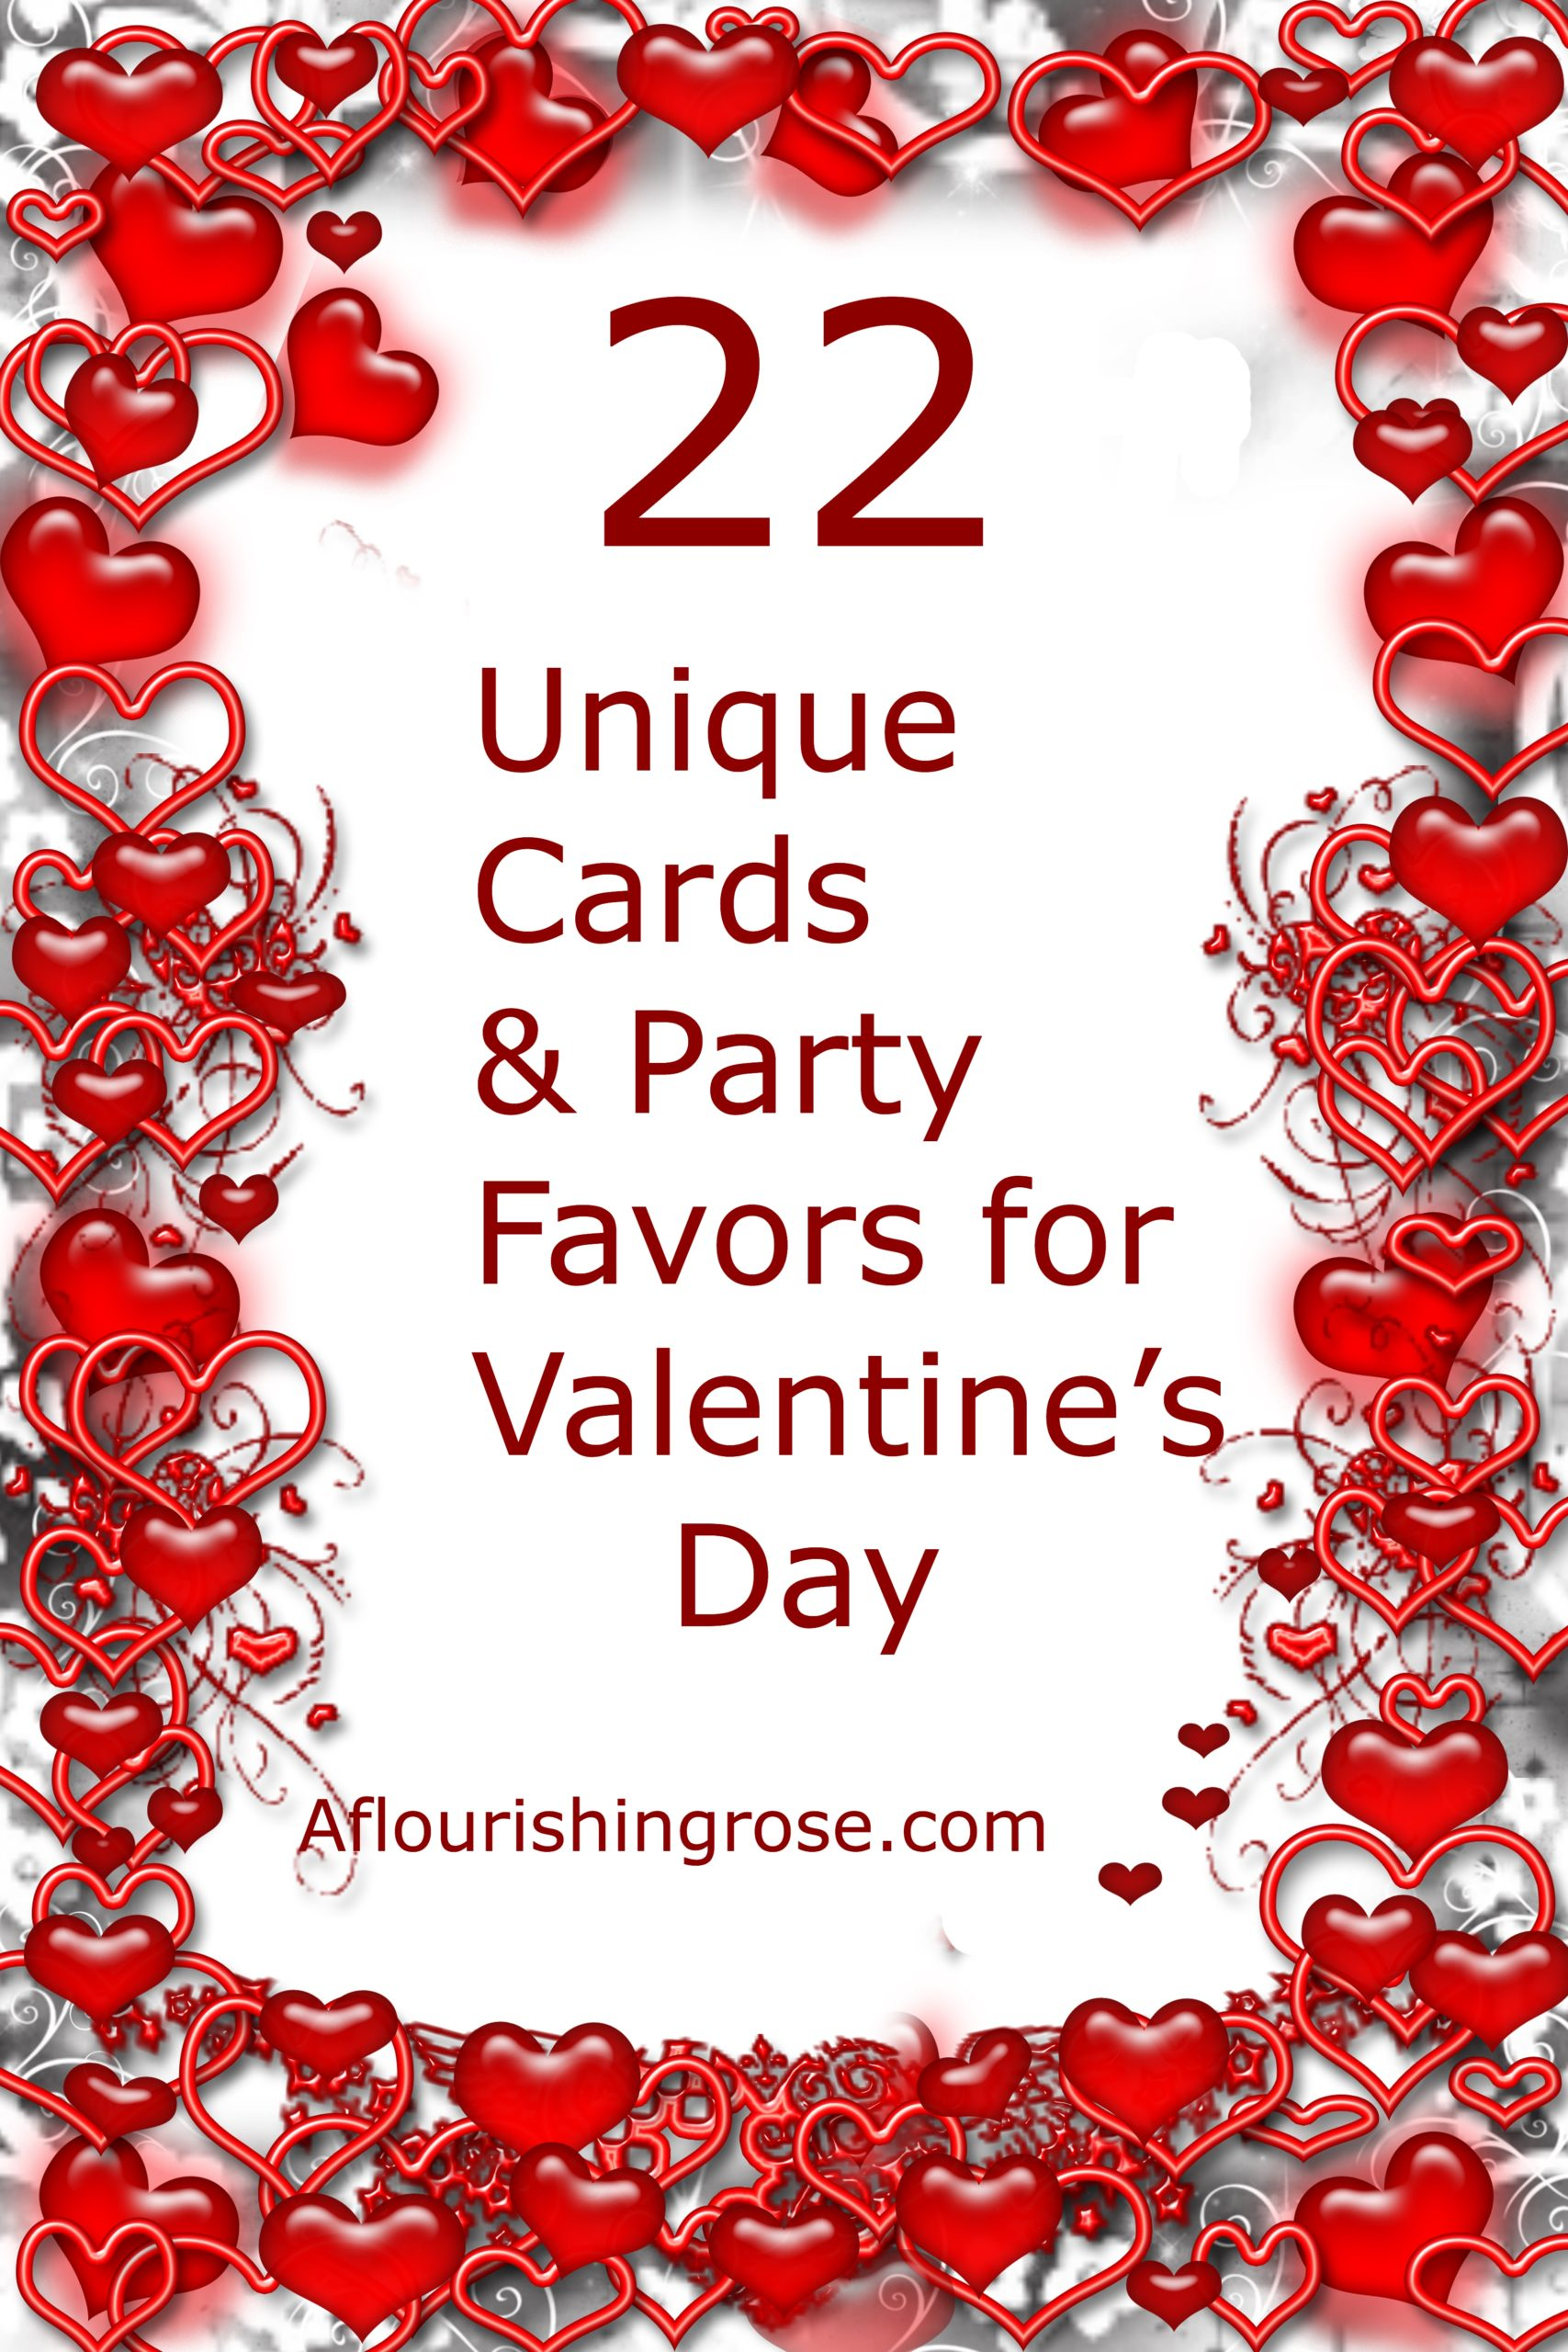 22 Unique Cards and Party Favors for Valentine's Day